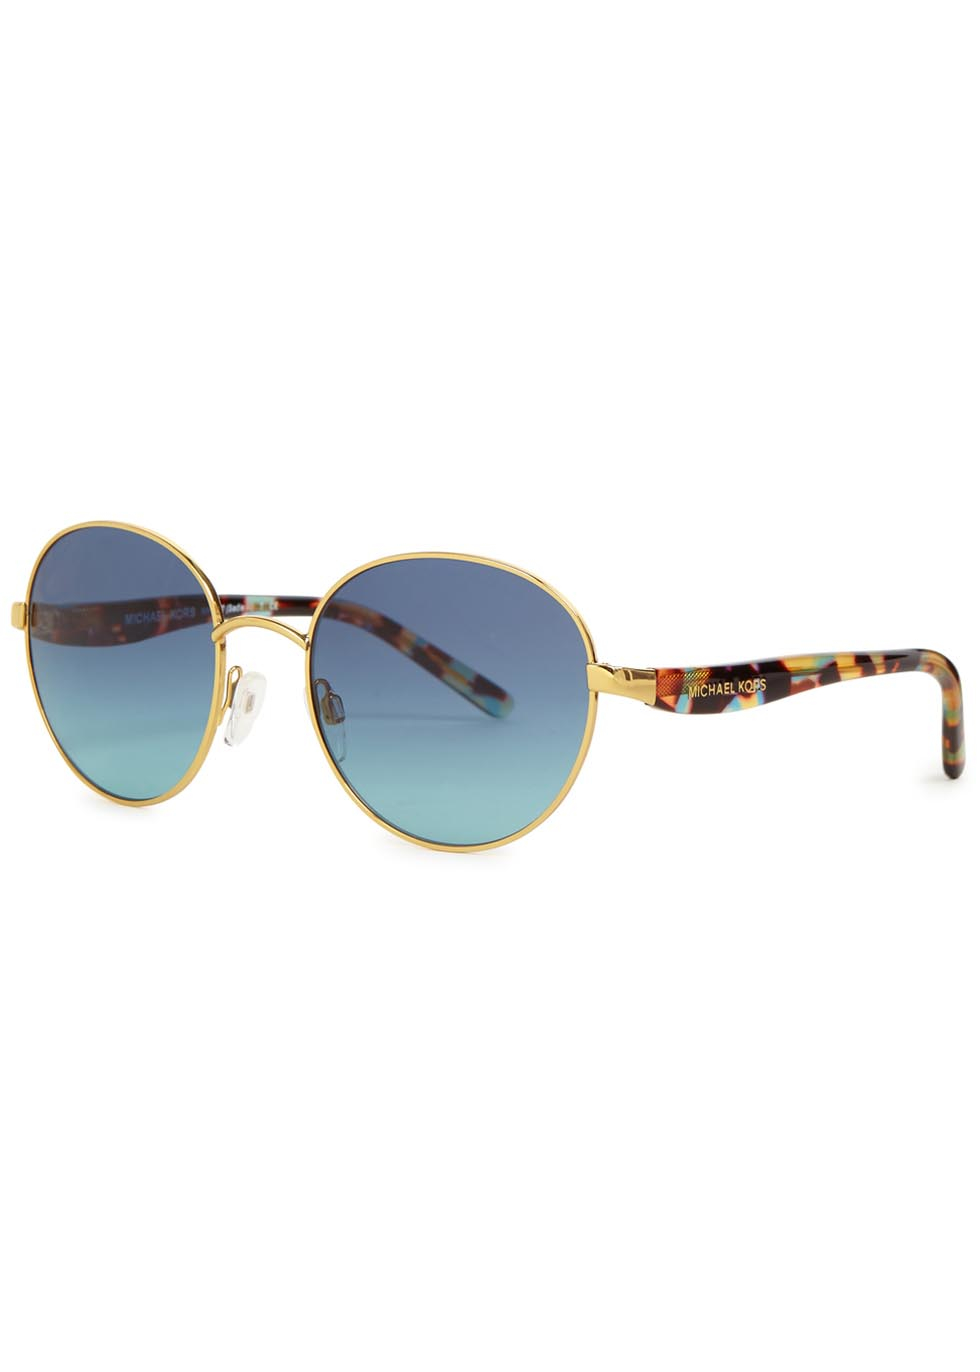 Michael Kors Gold Frame Sunglasses : Michael kors Sadie Iii Gold Tone Round-frame Sunglasses in ...